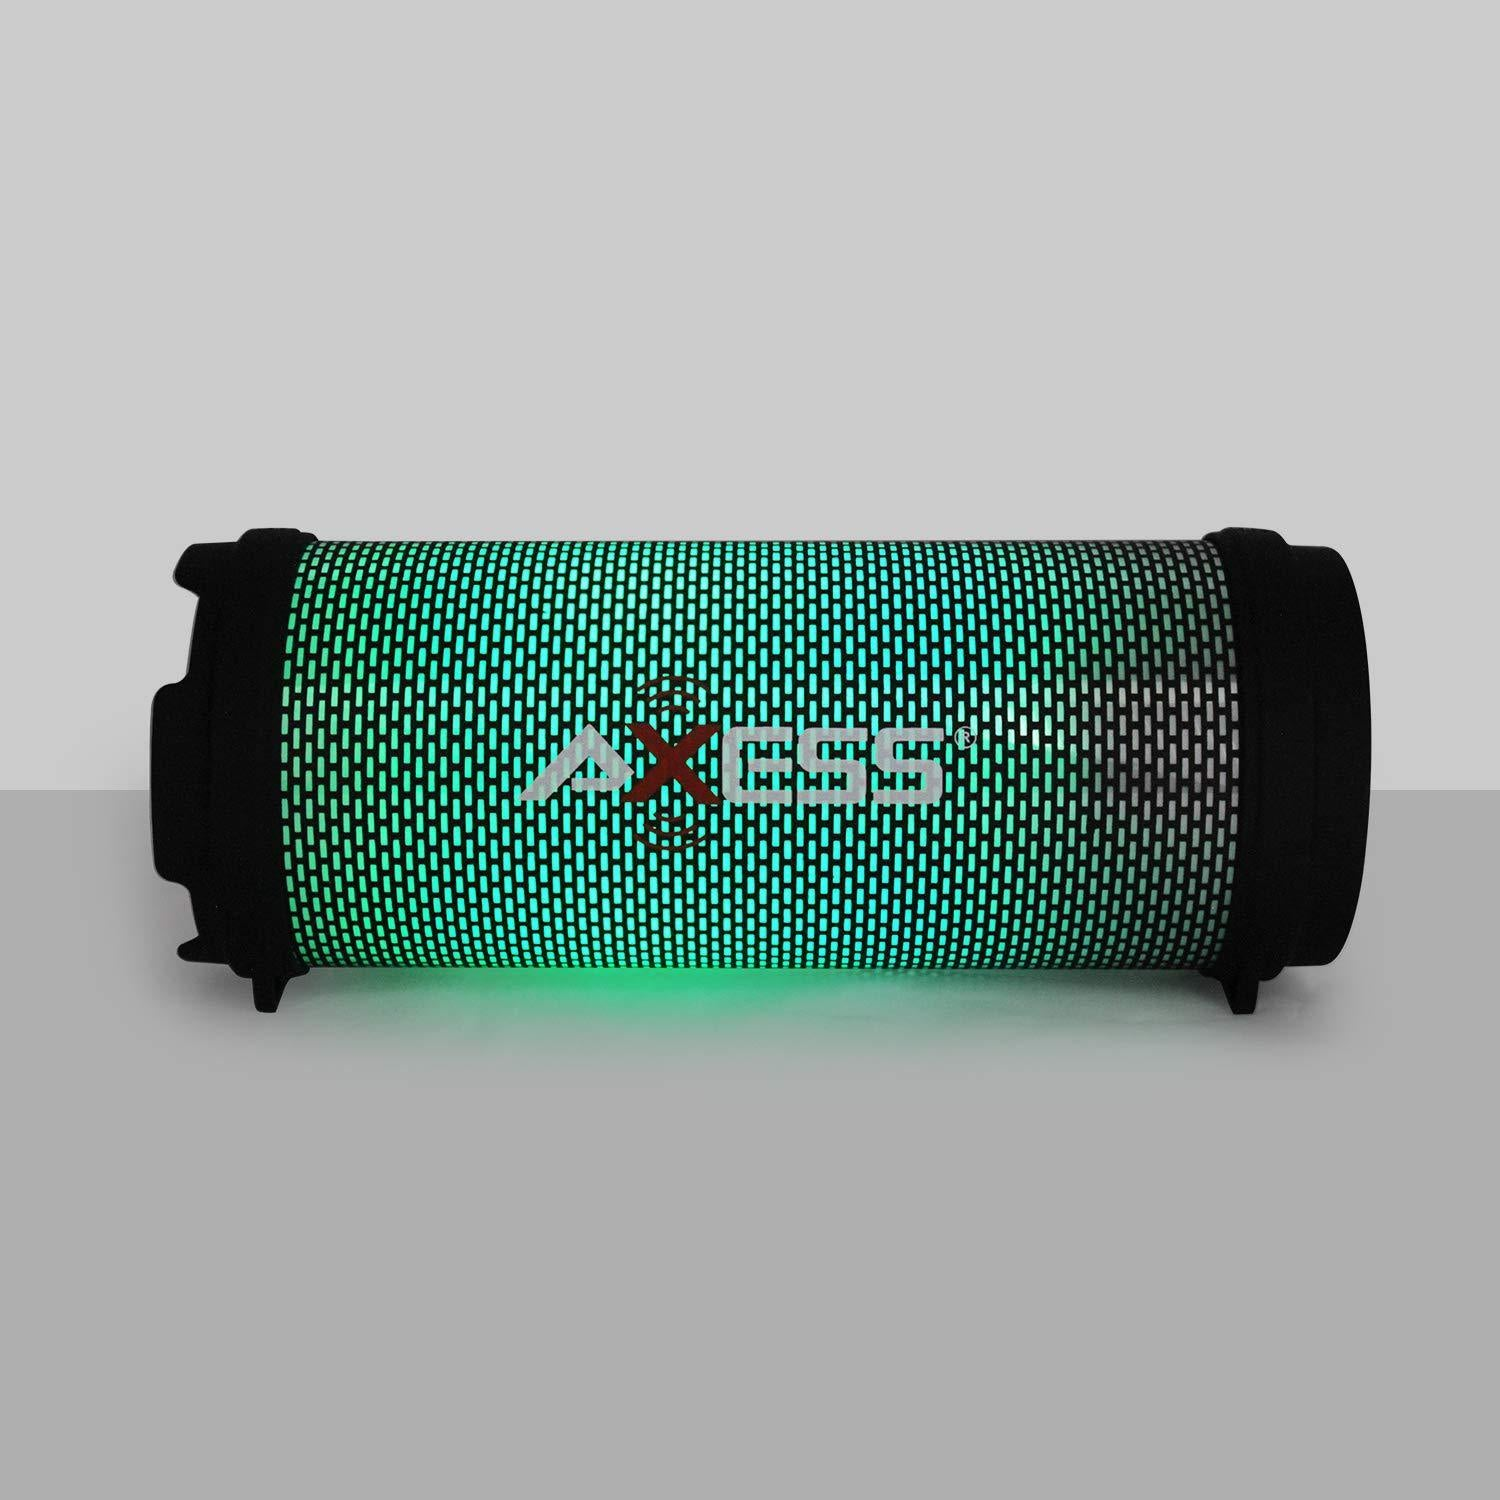 AXESS SPBL1043 Mini Portable Bluetooth Hi-Fi Bluetooth Speaker with Dancing LED Lights, Black